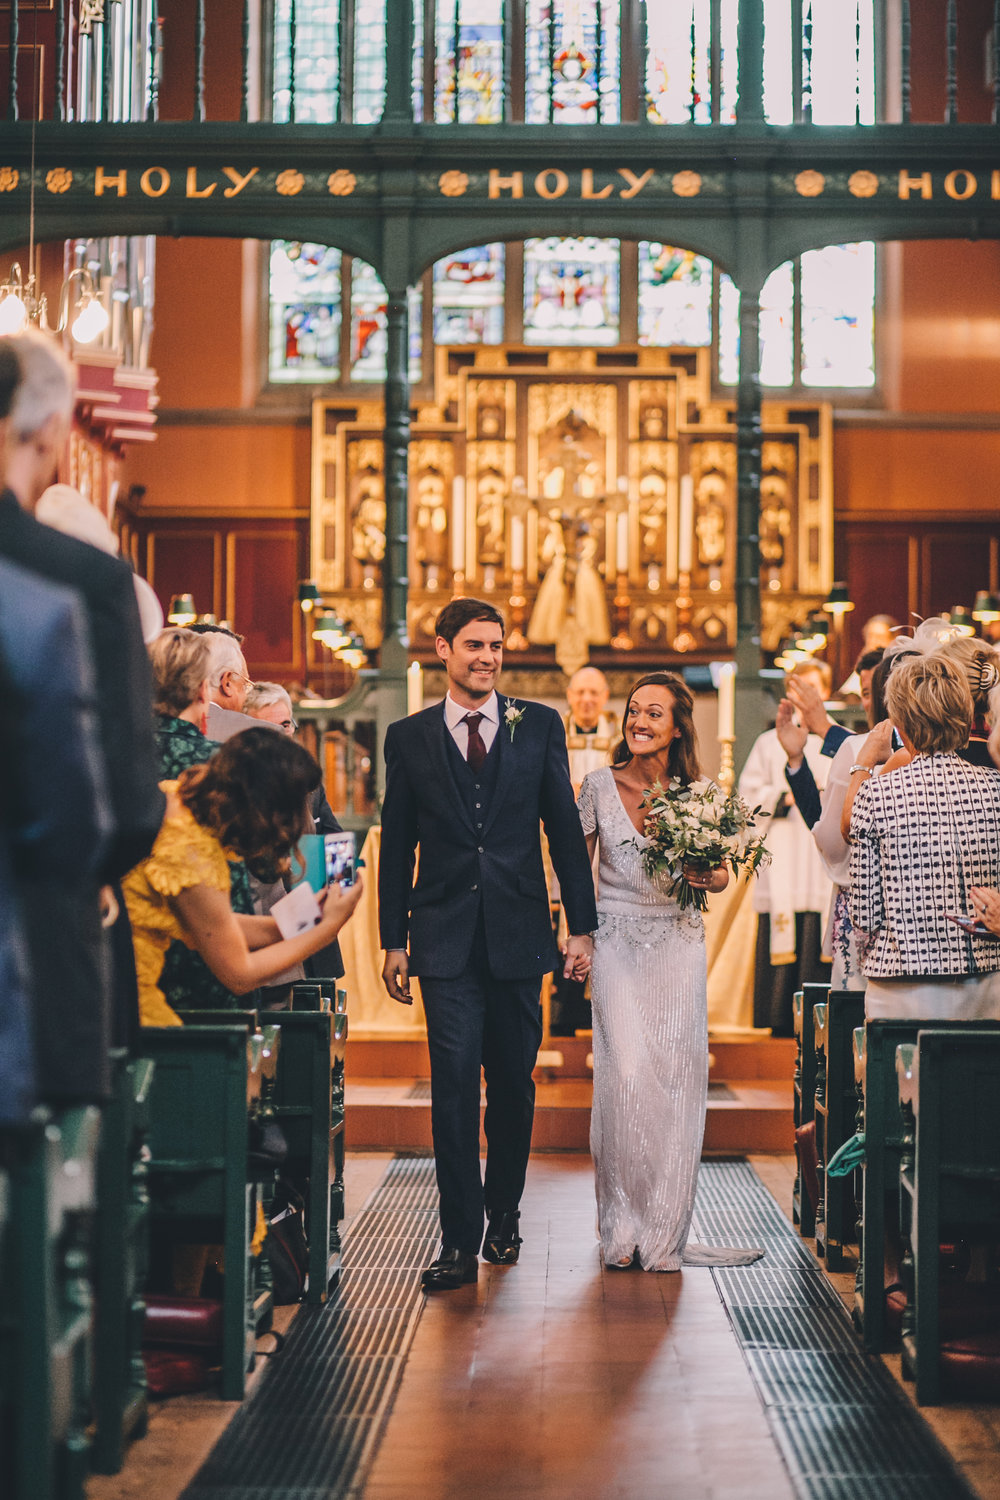 wedding-three-piece-suit-susannah-hall-tailor-british-bespoke-brook-taverner.jpg